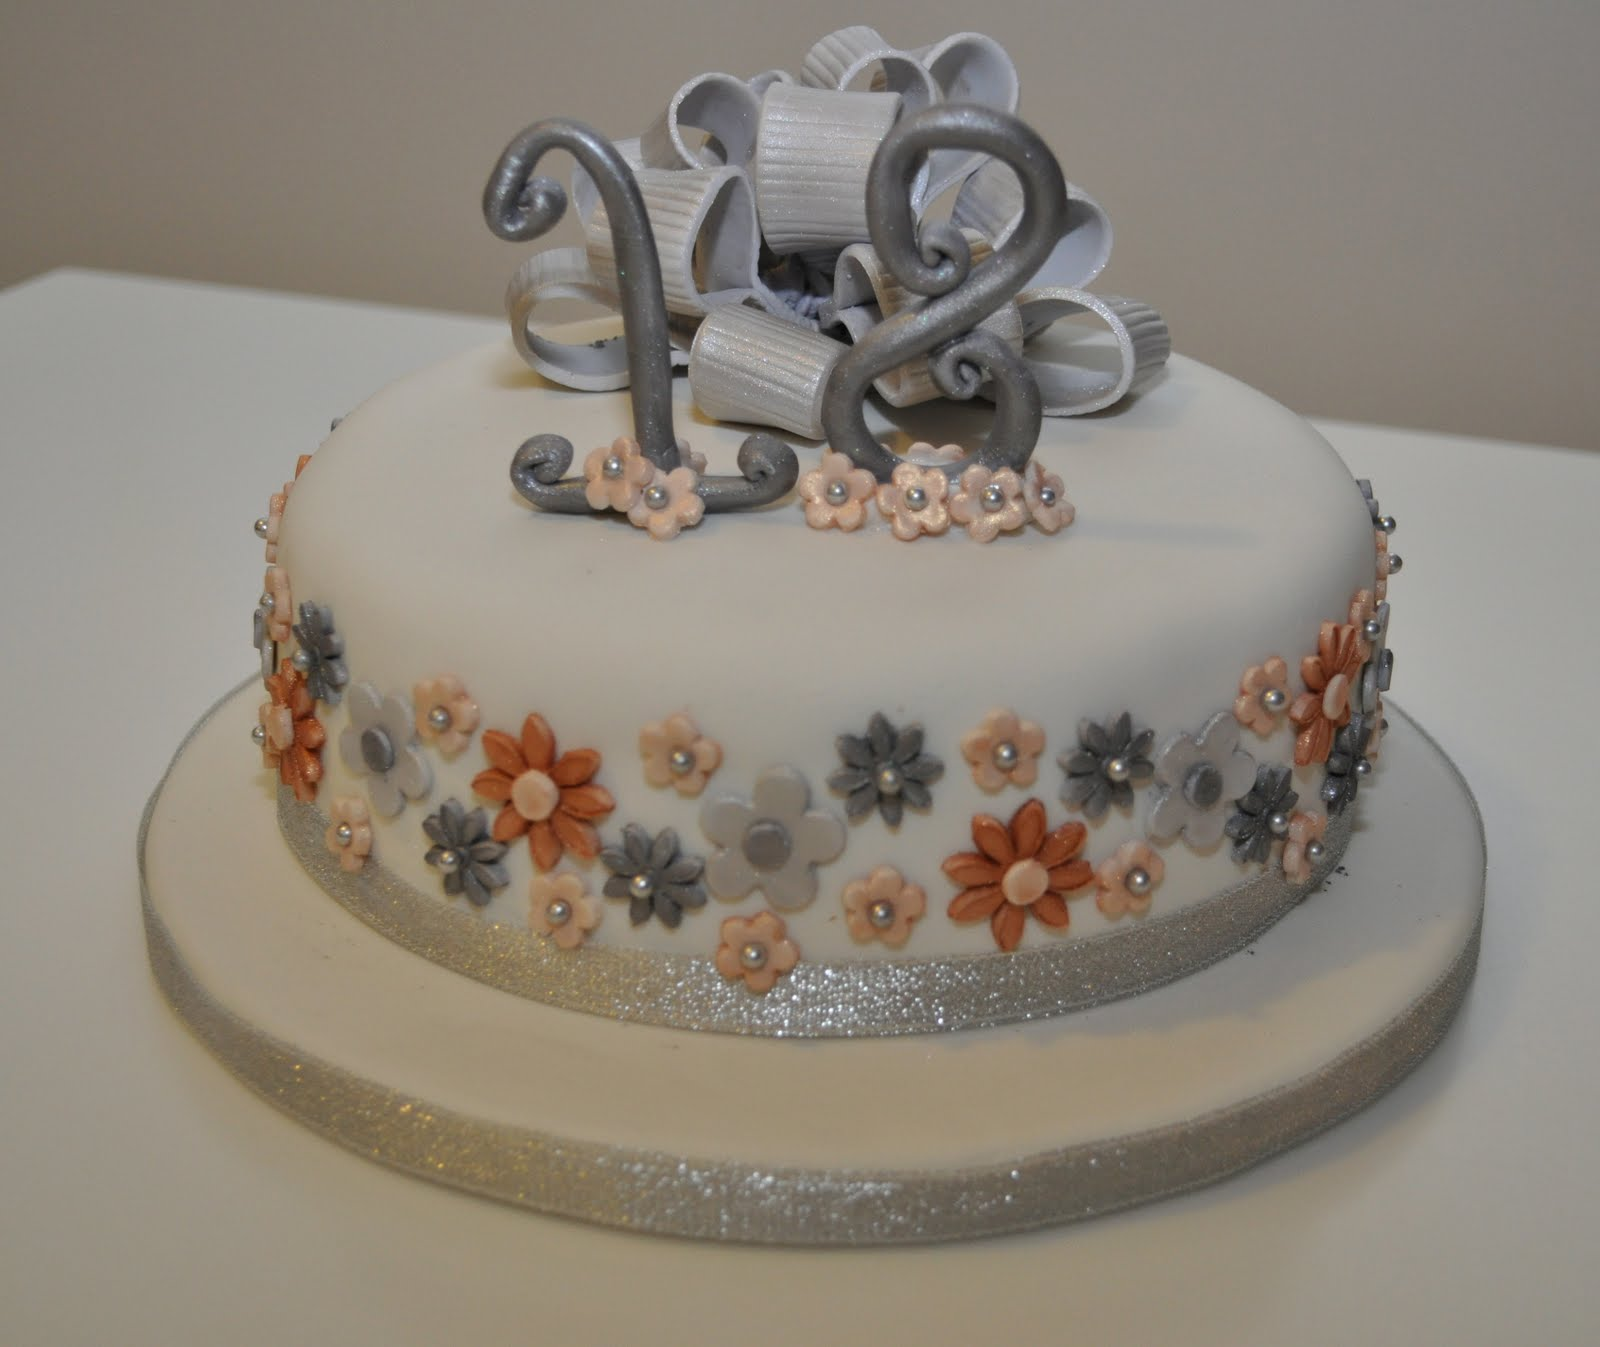 Amazing Cakes: Simply Amazing Cakes: 18th Silver & Gold Birthday Cake